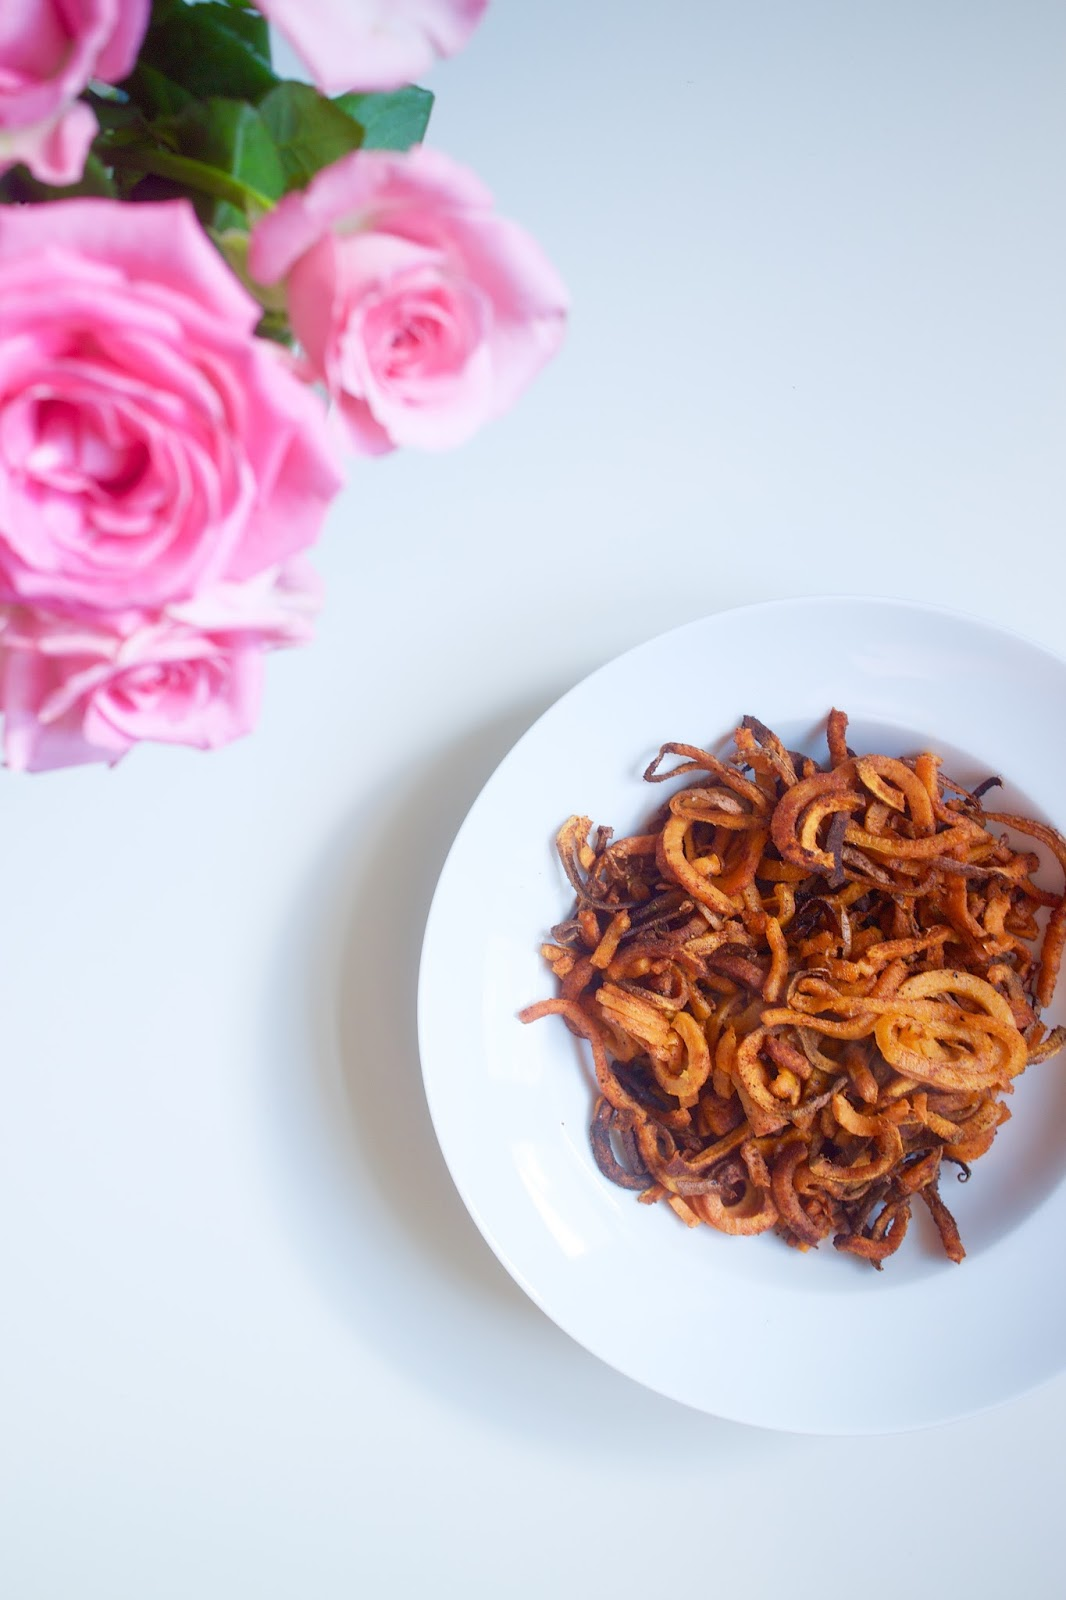 She's So Lucy shessolucy curly sweet potato fries matchstick spiraliser spiralizer sweet potato fries recipe homemade british health beauty blogger UK Bath low carb chips fries healthy chips